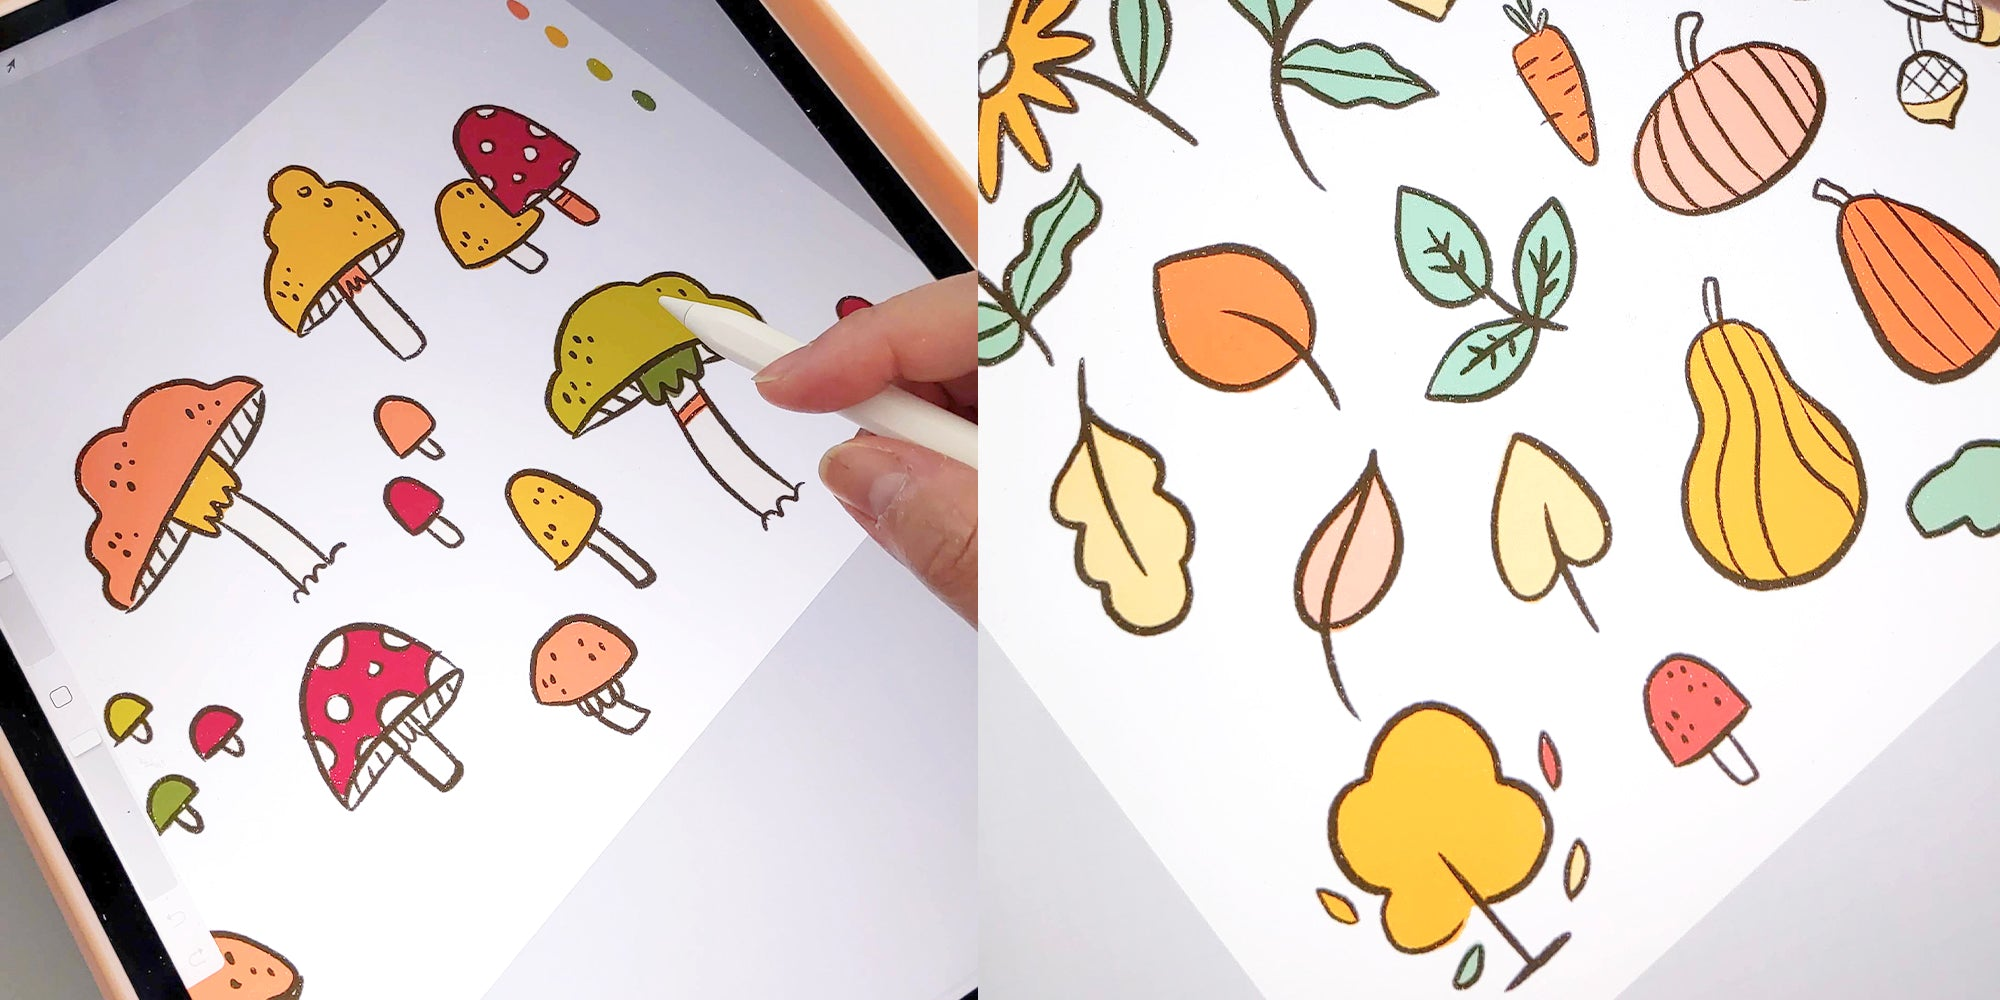 Cheery Human Studios Autumn 2021 Work in Progress shots featuring illustrated mushrooms, gourds, leaves, and florals